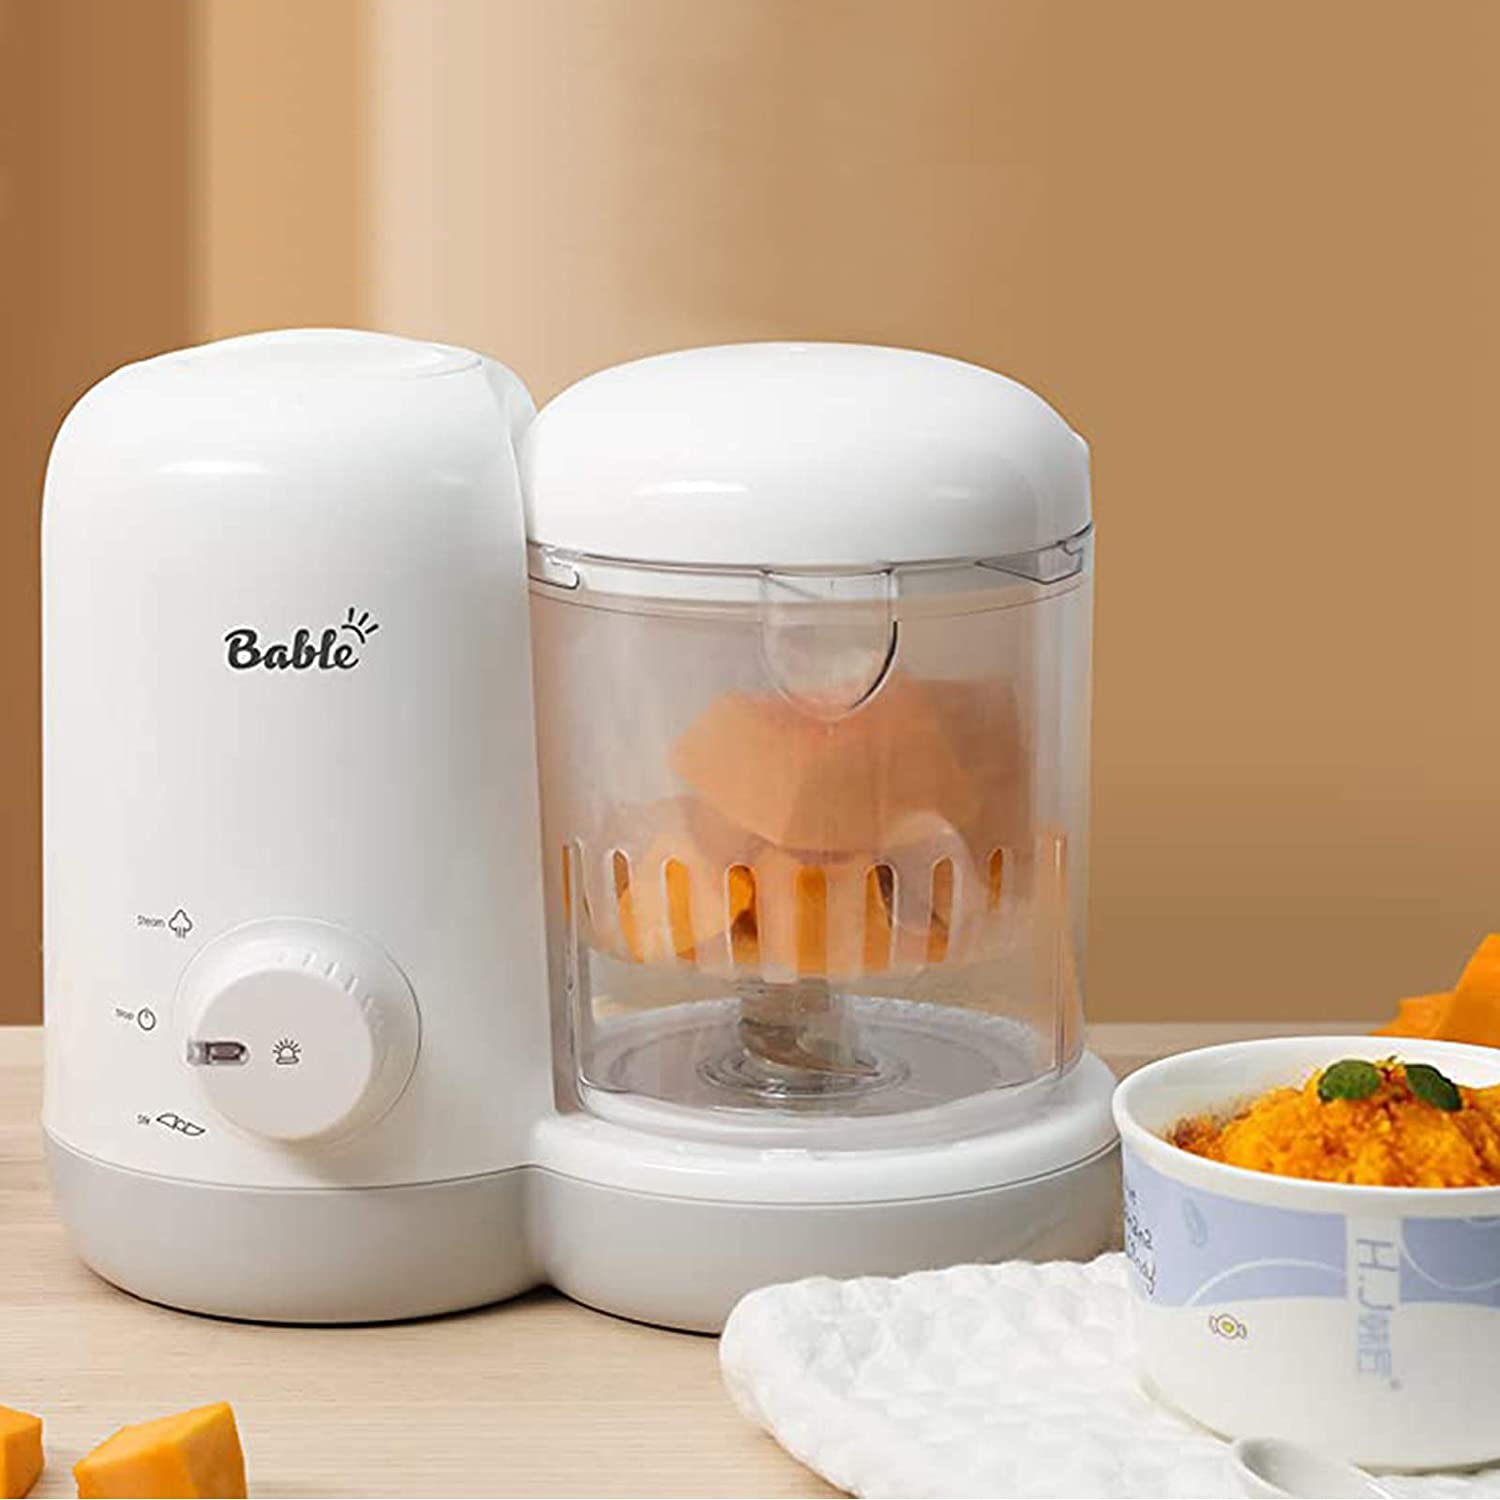 Bable Deluxe Baby Max 49% OFF Food Maker Steamer Pro and Blender- 2-in-1